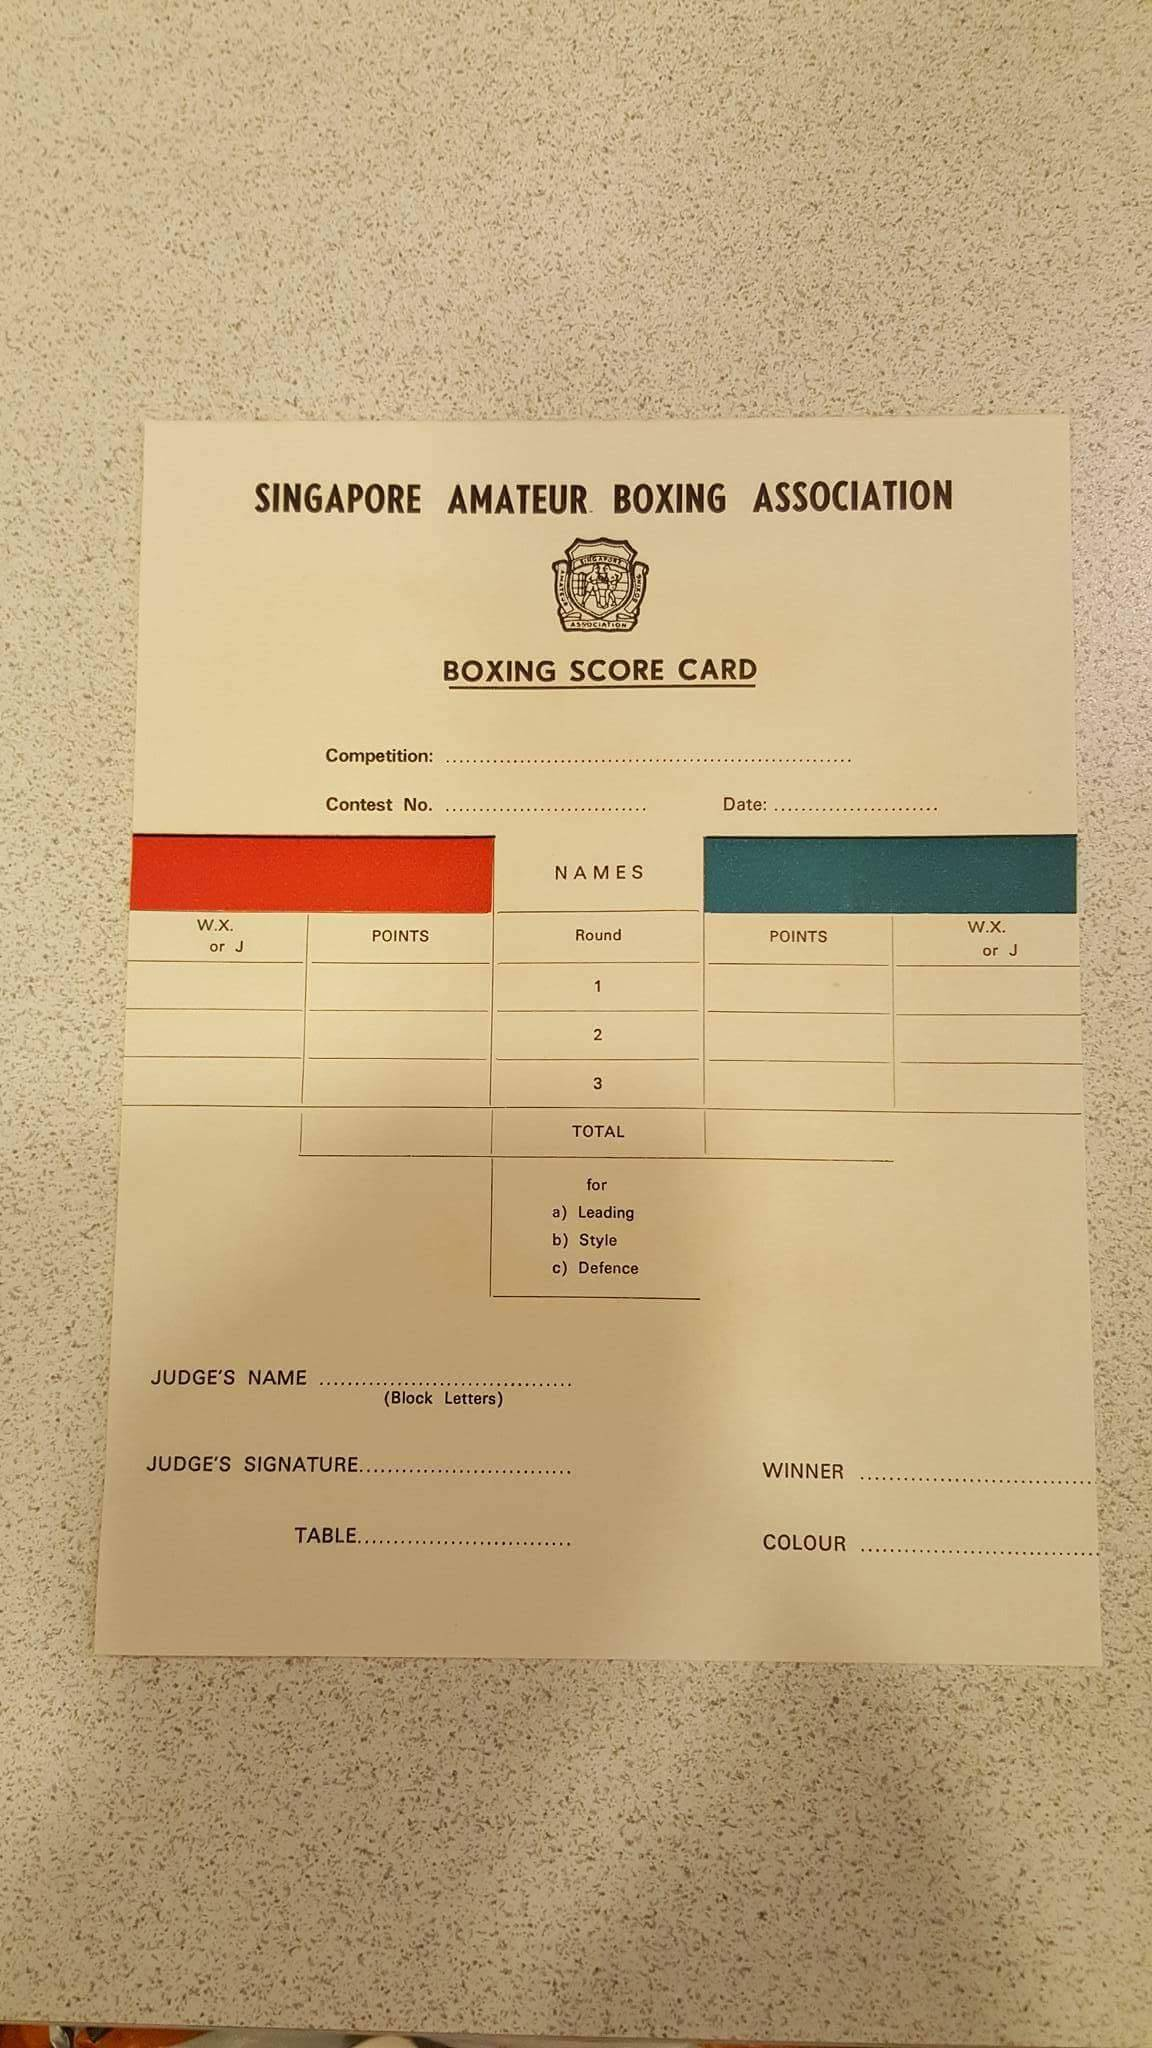 A SABA Score Sheet from the 1960s